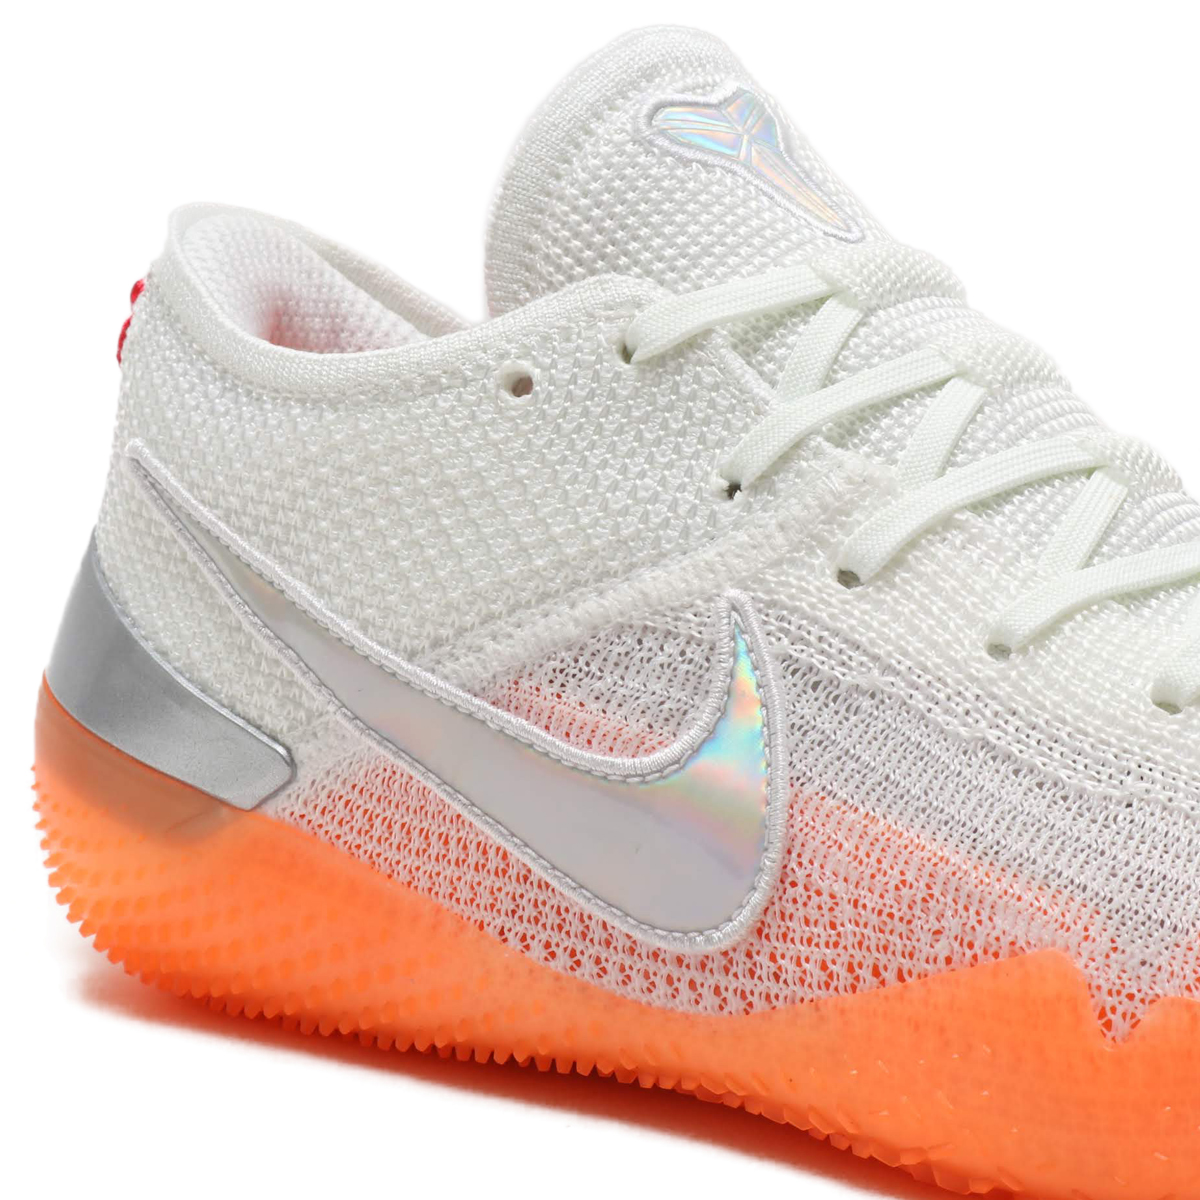 size 40 992b2 f0f17 NIKE KOBE AD NXT 360 (Nike Corby AD NXT 360) (WHITE MULTI-COLOR-INFRARED  23-VOLT) 18SU-S